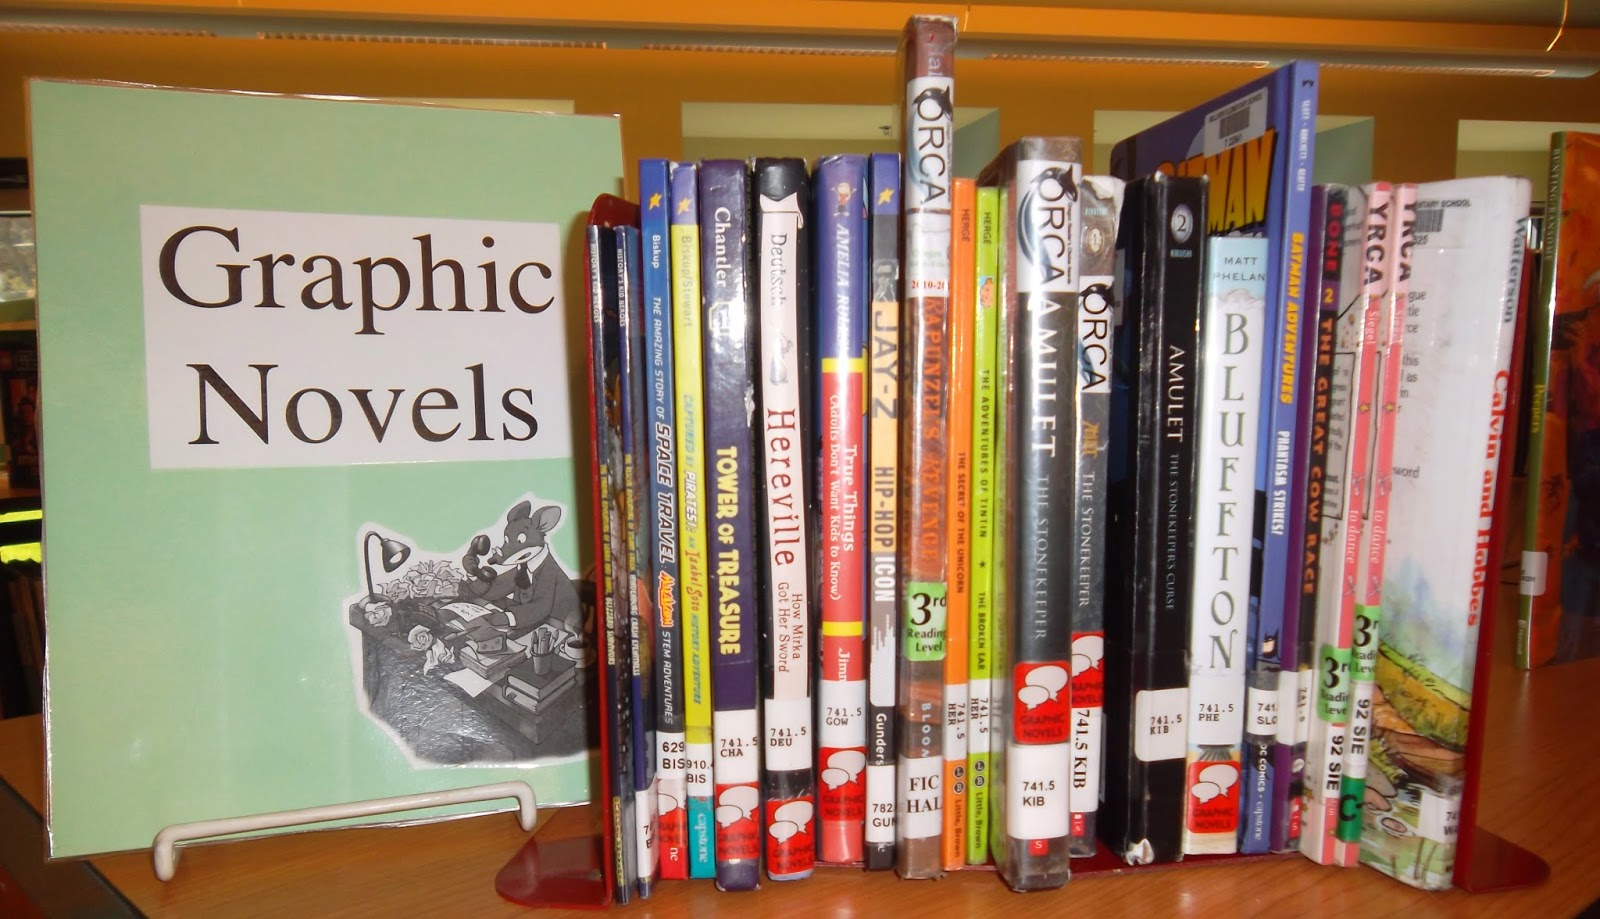 "Graphic novels shelved between bookends. At left, a sign proclaiming ""Graphic Novels"" features a cut-out of cartoon rodent Geronimo Stilton at his desk"